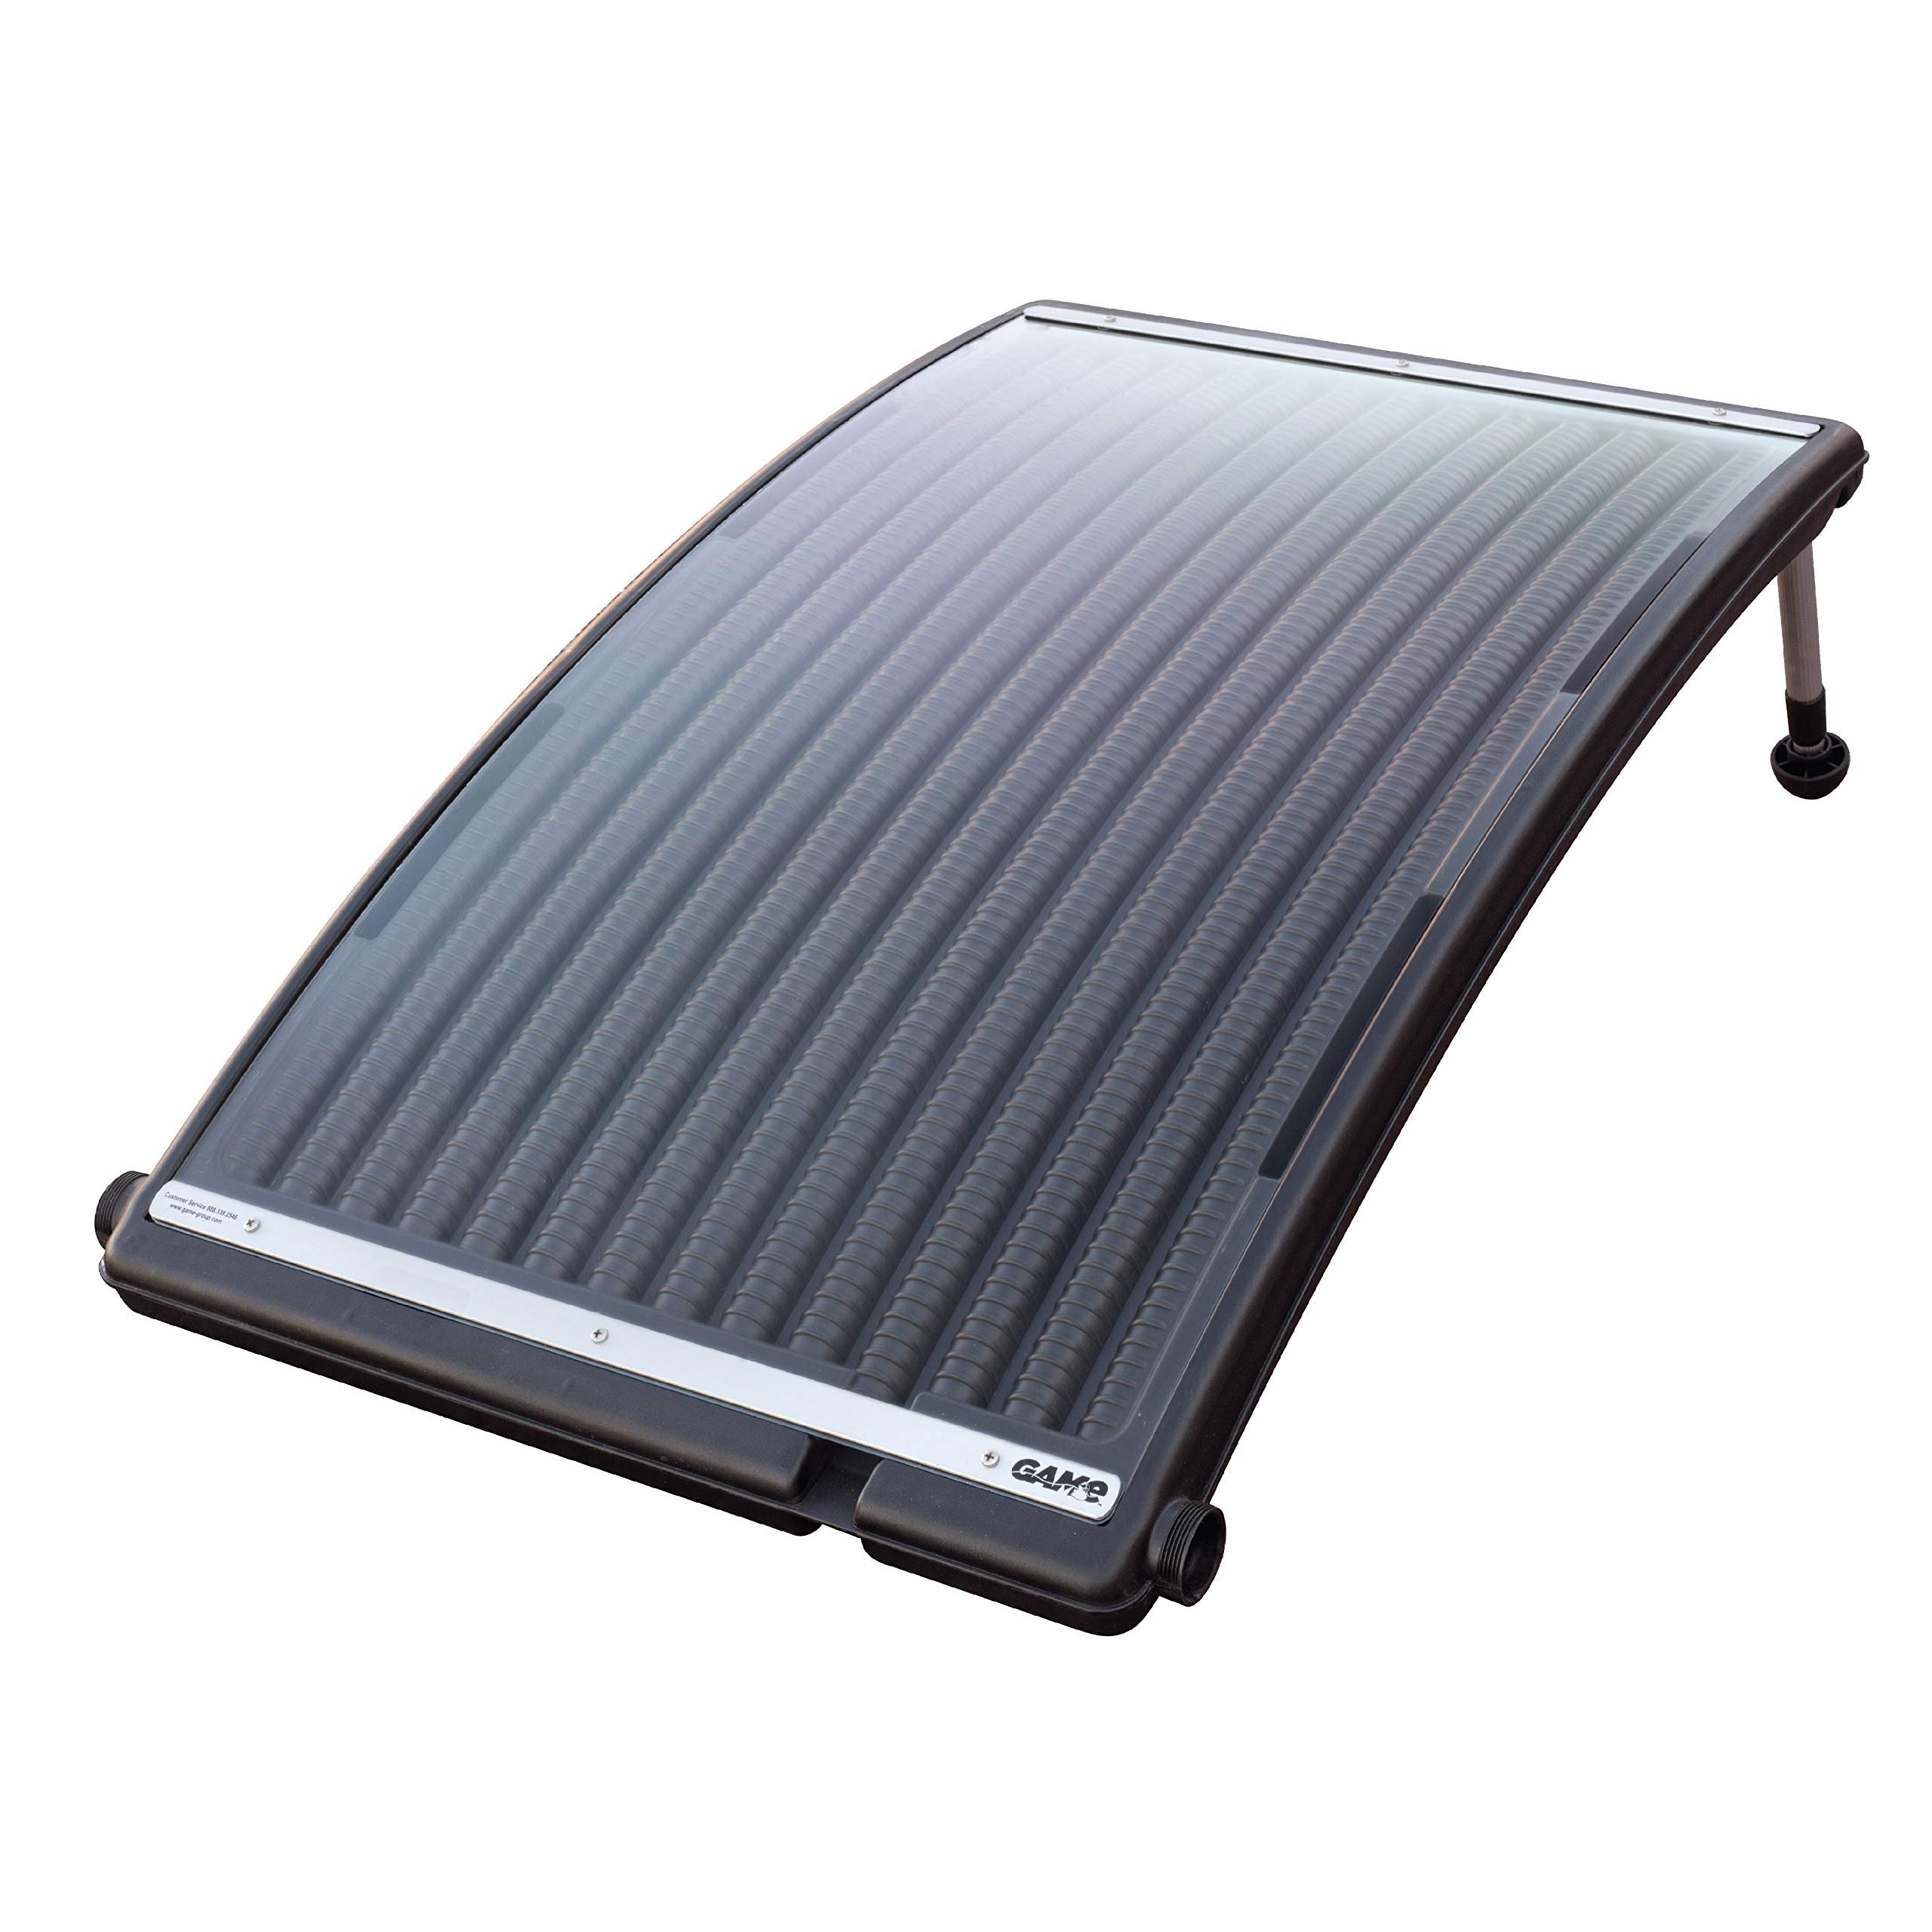 GAME 4721-BB SolarPRO Curve Solar Pool Heater, Made for Intex & Bestway Above-Ground and Inground Pools, Includes Intex Adapters, 2 Hoses & Clamps (Renewed) by GAME